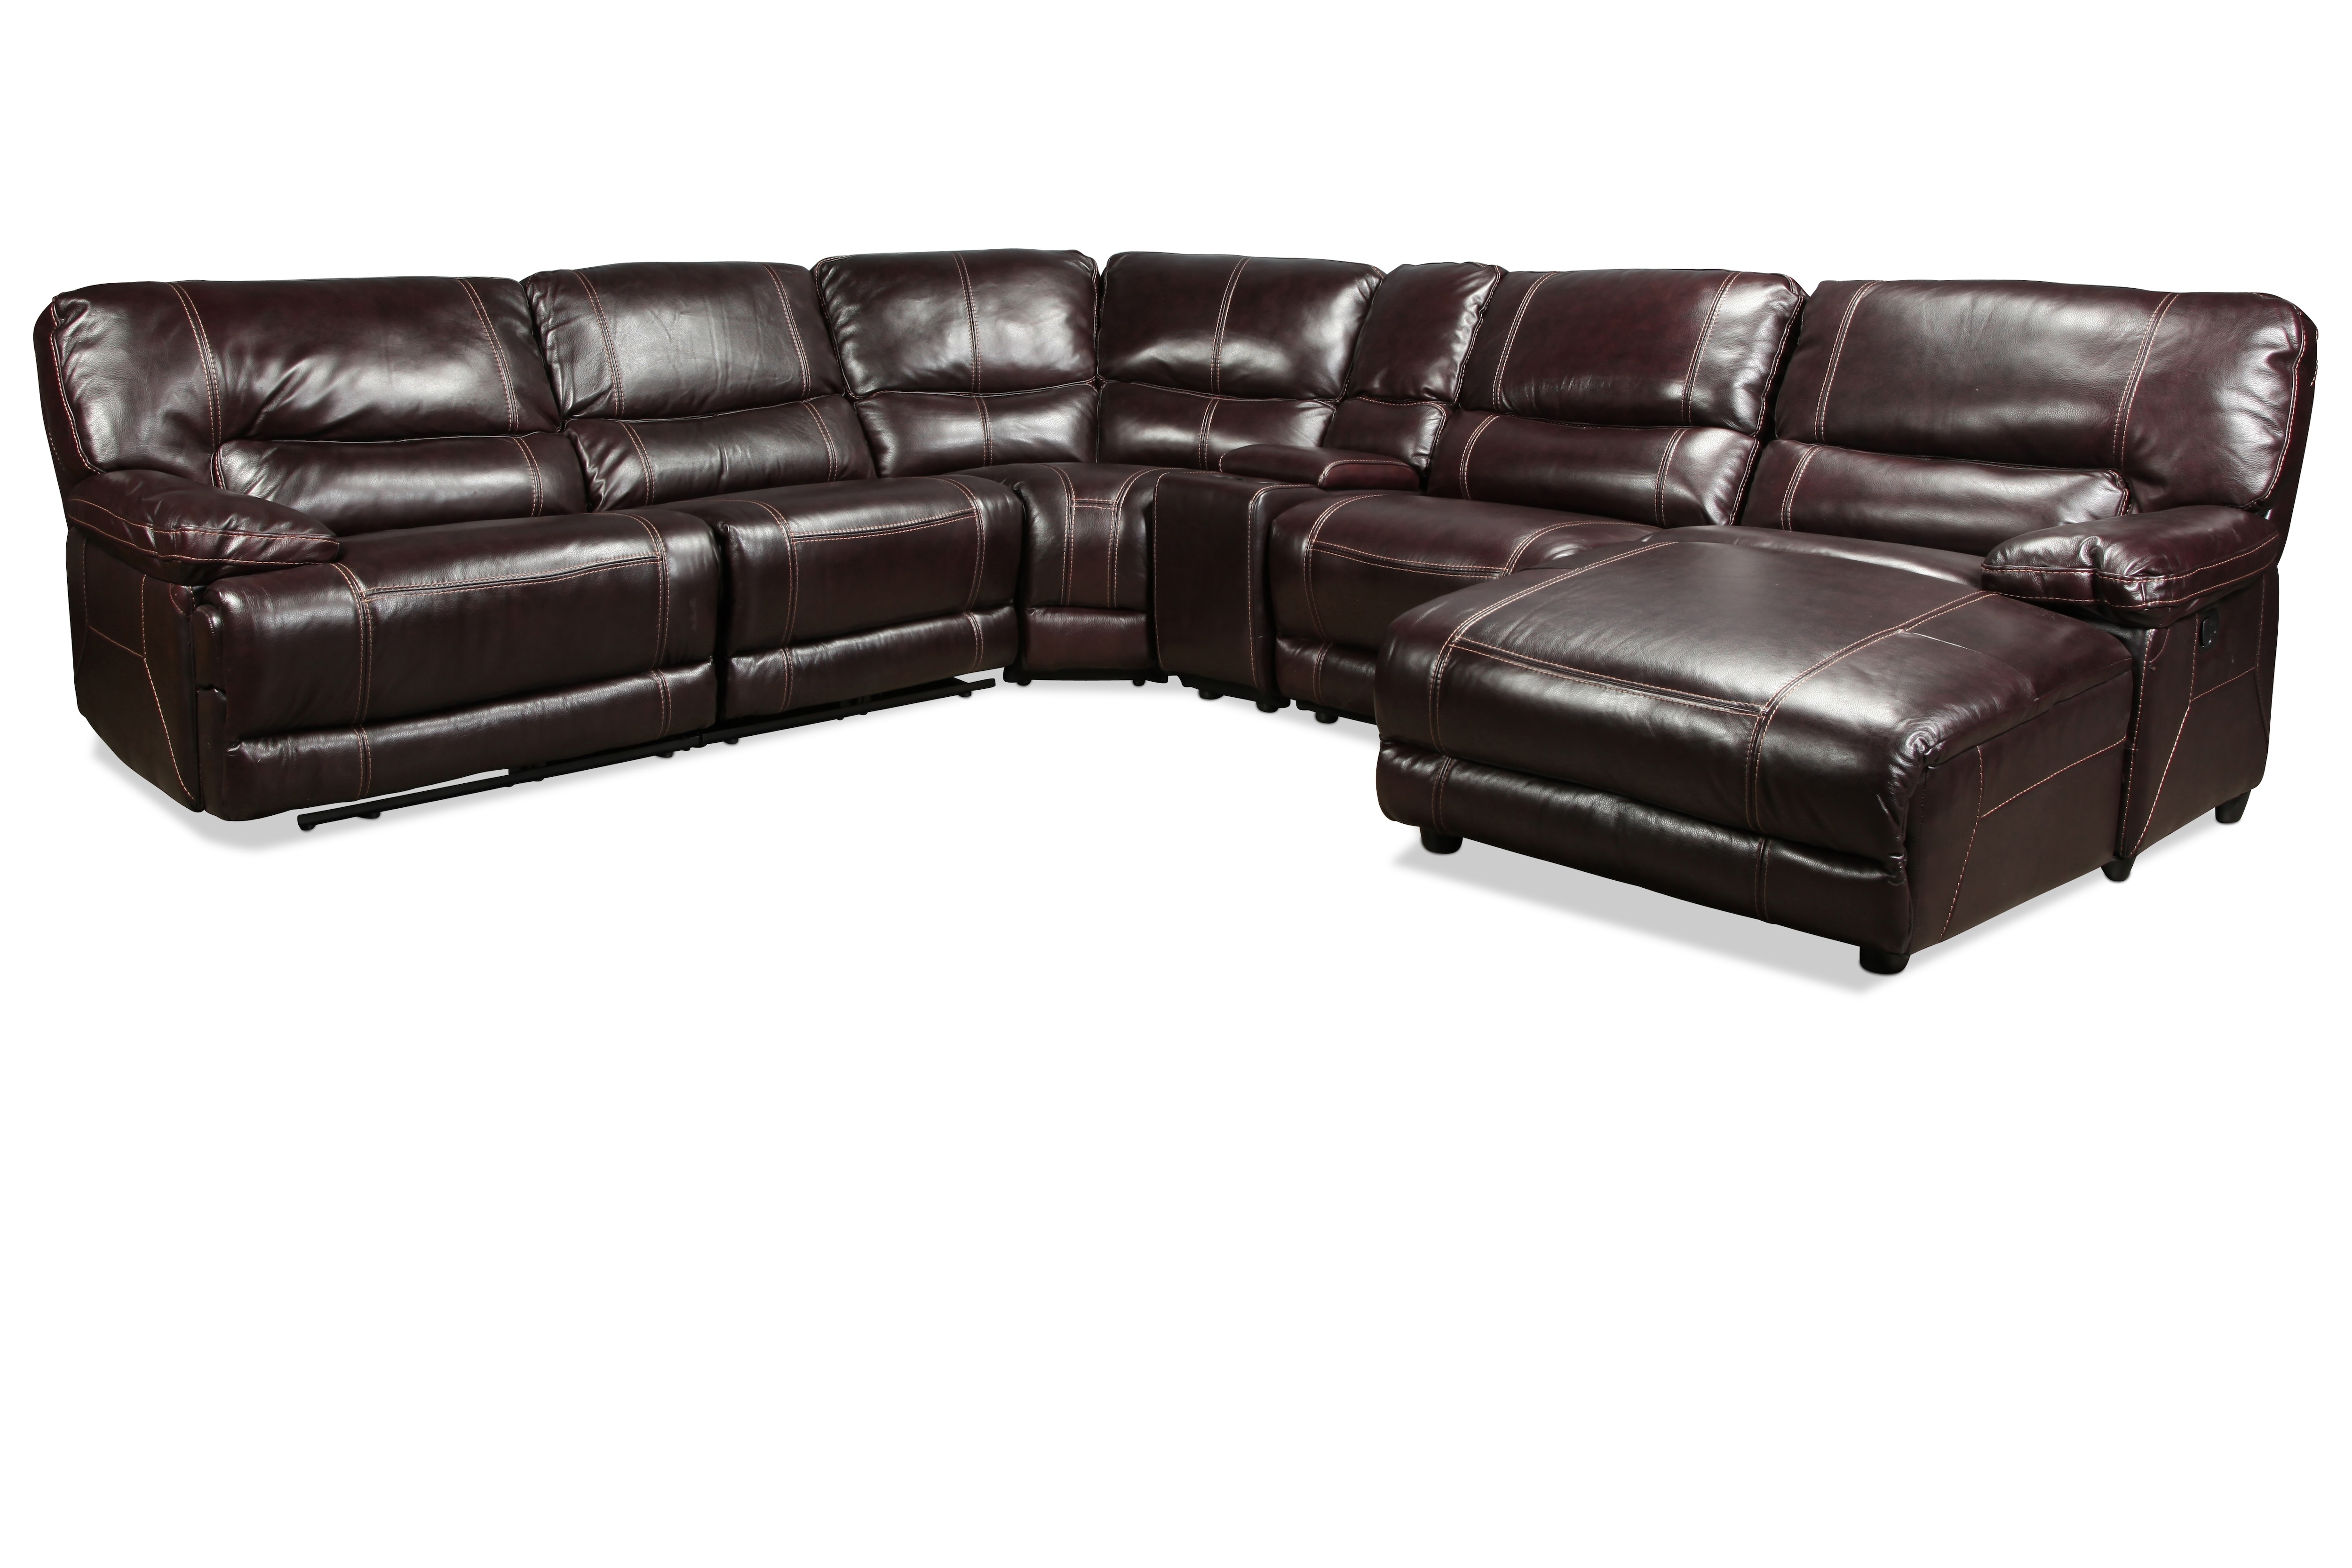 Sectionals | Levin Furniture Intended For Jackson 6 Piece Power Reclining Sectionals With Sleeper (View 20 of 25)